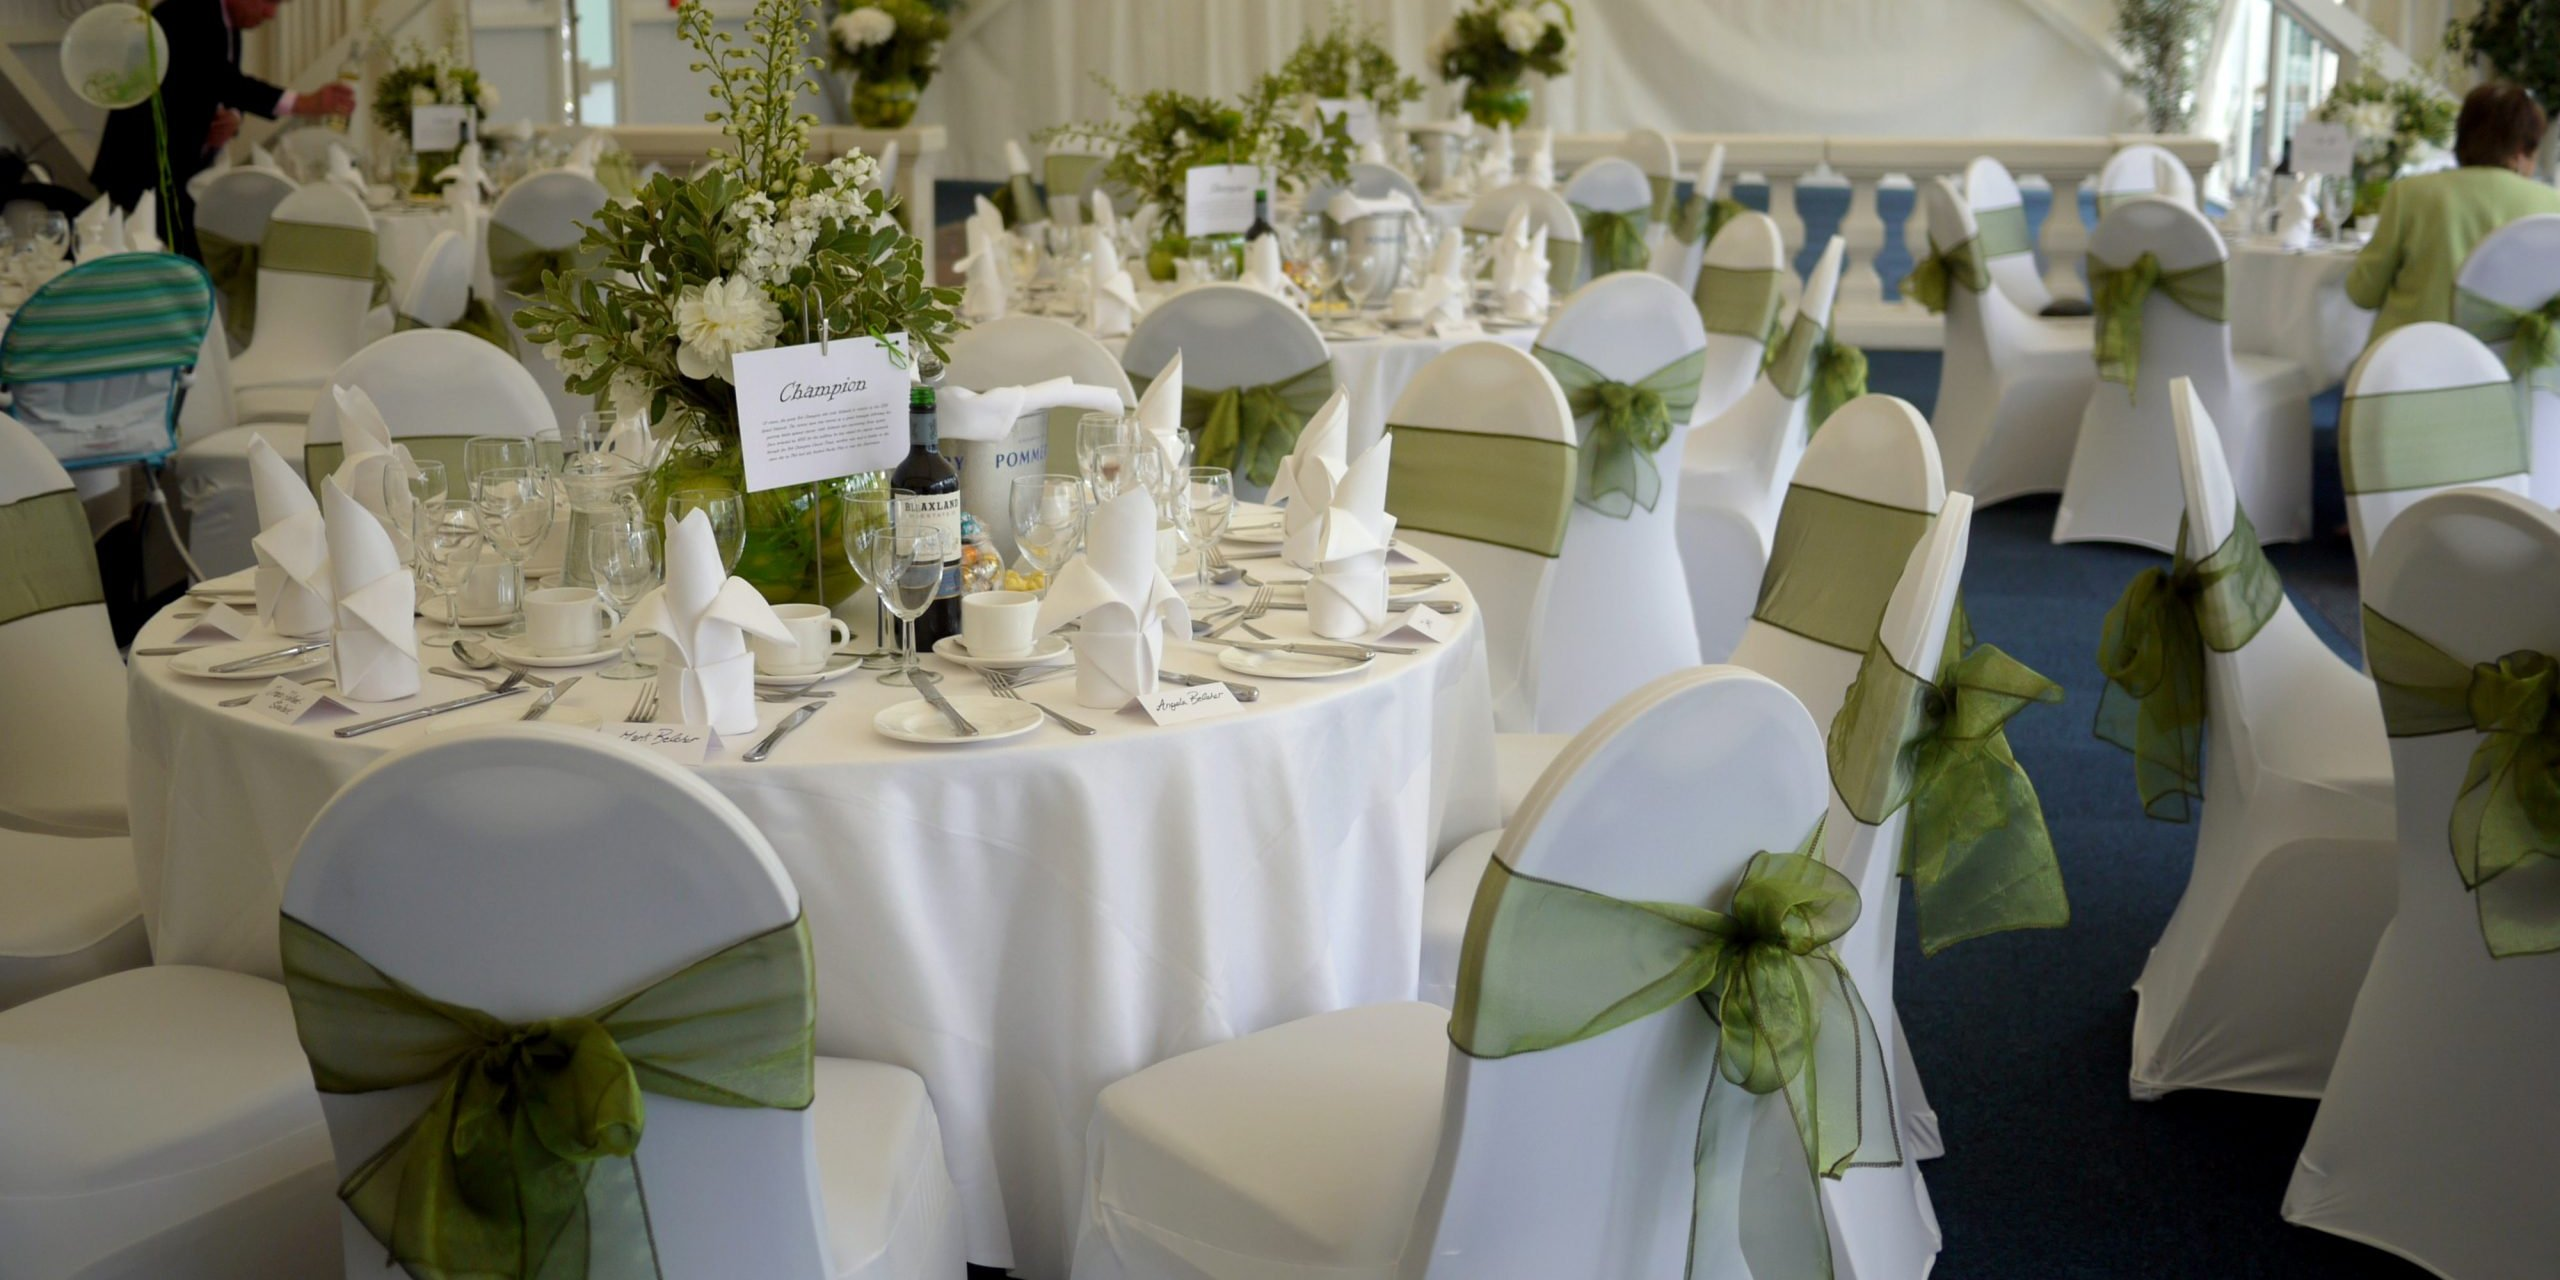 wedding marquee set up with green and white table setting